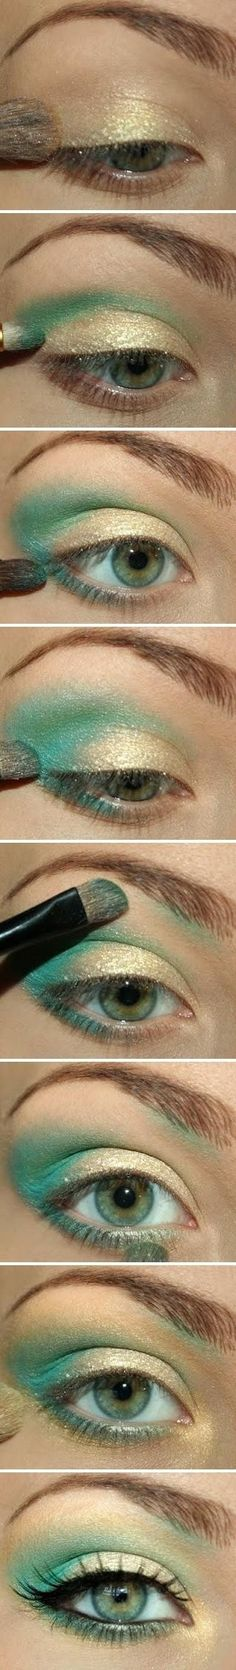 Love this green and gold eye makeup